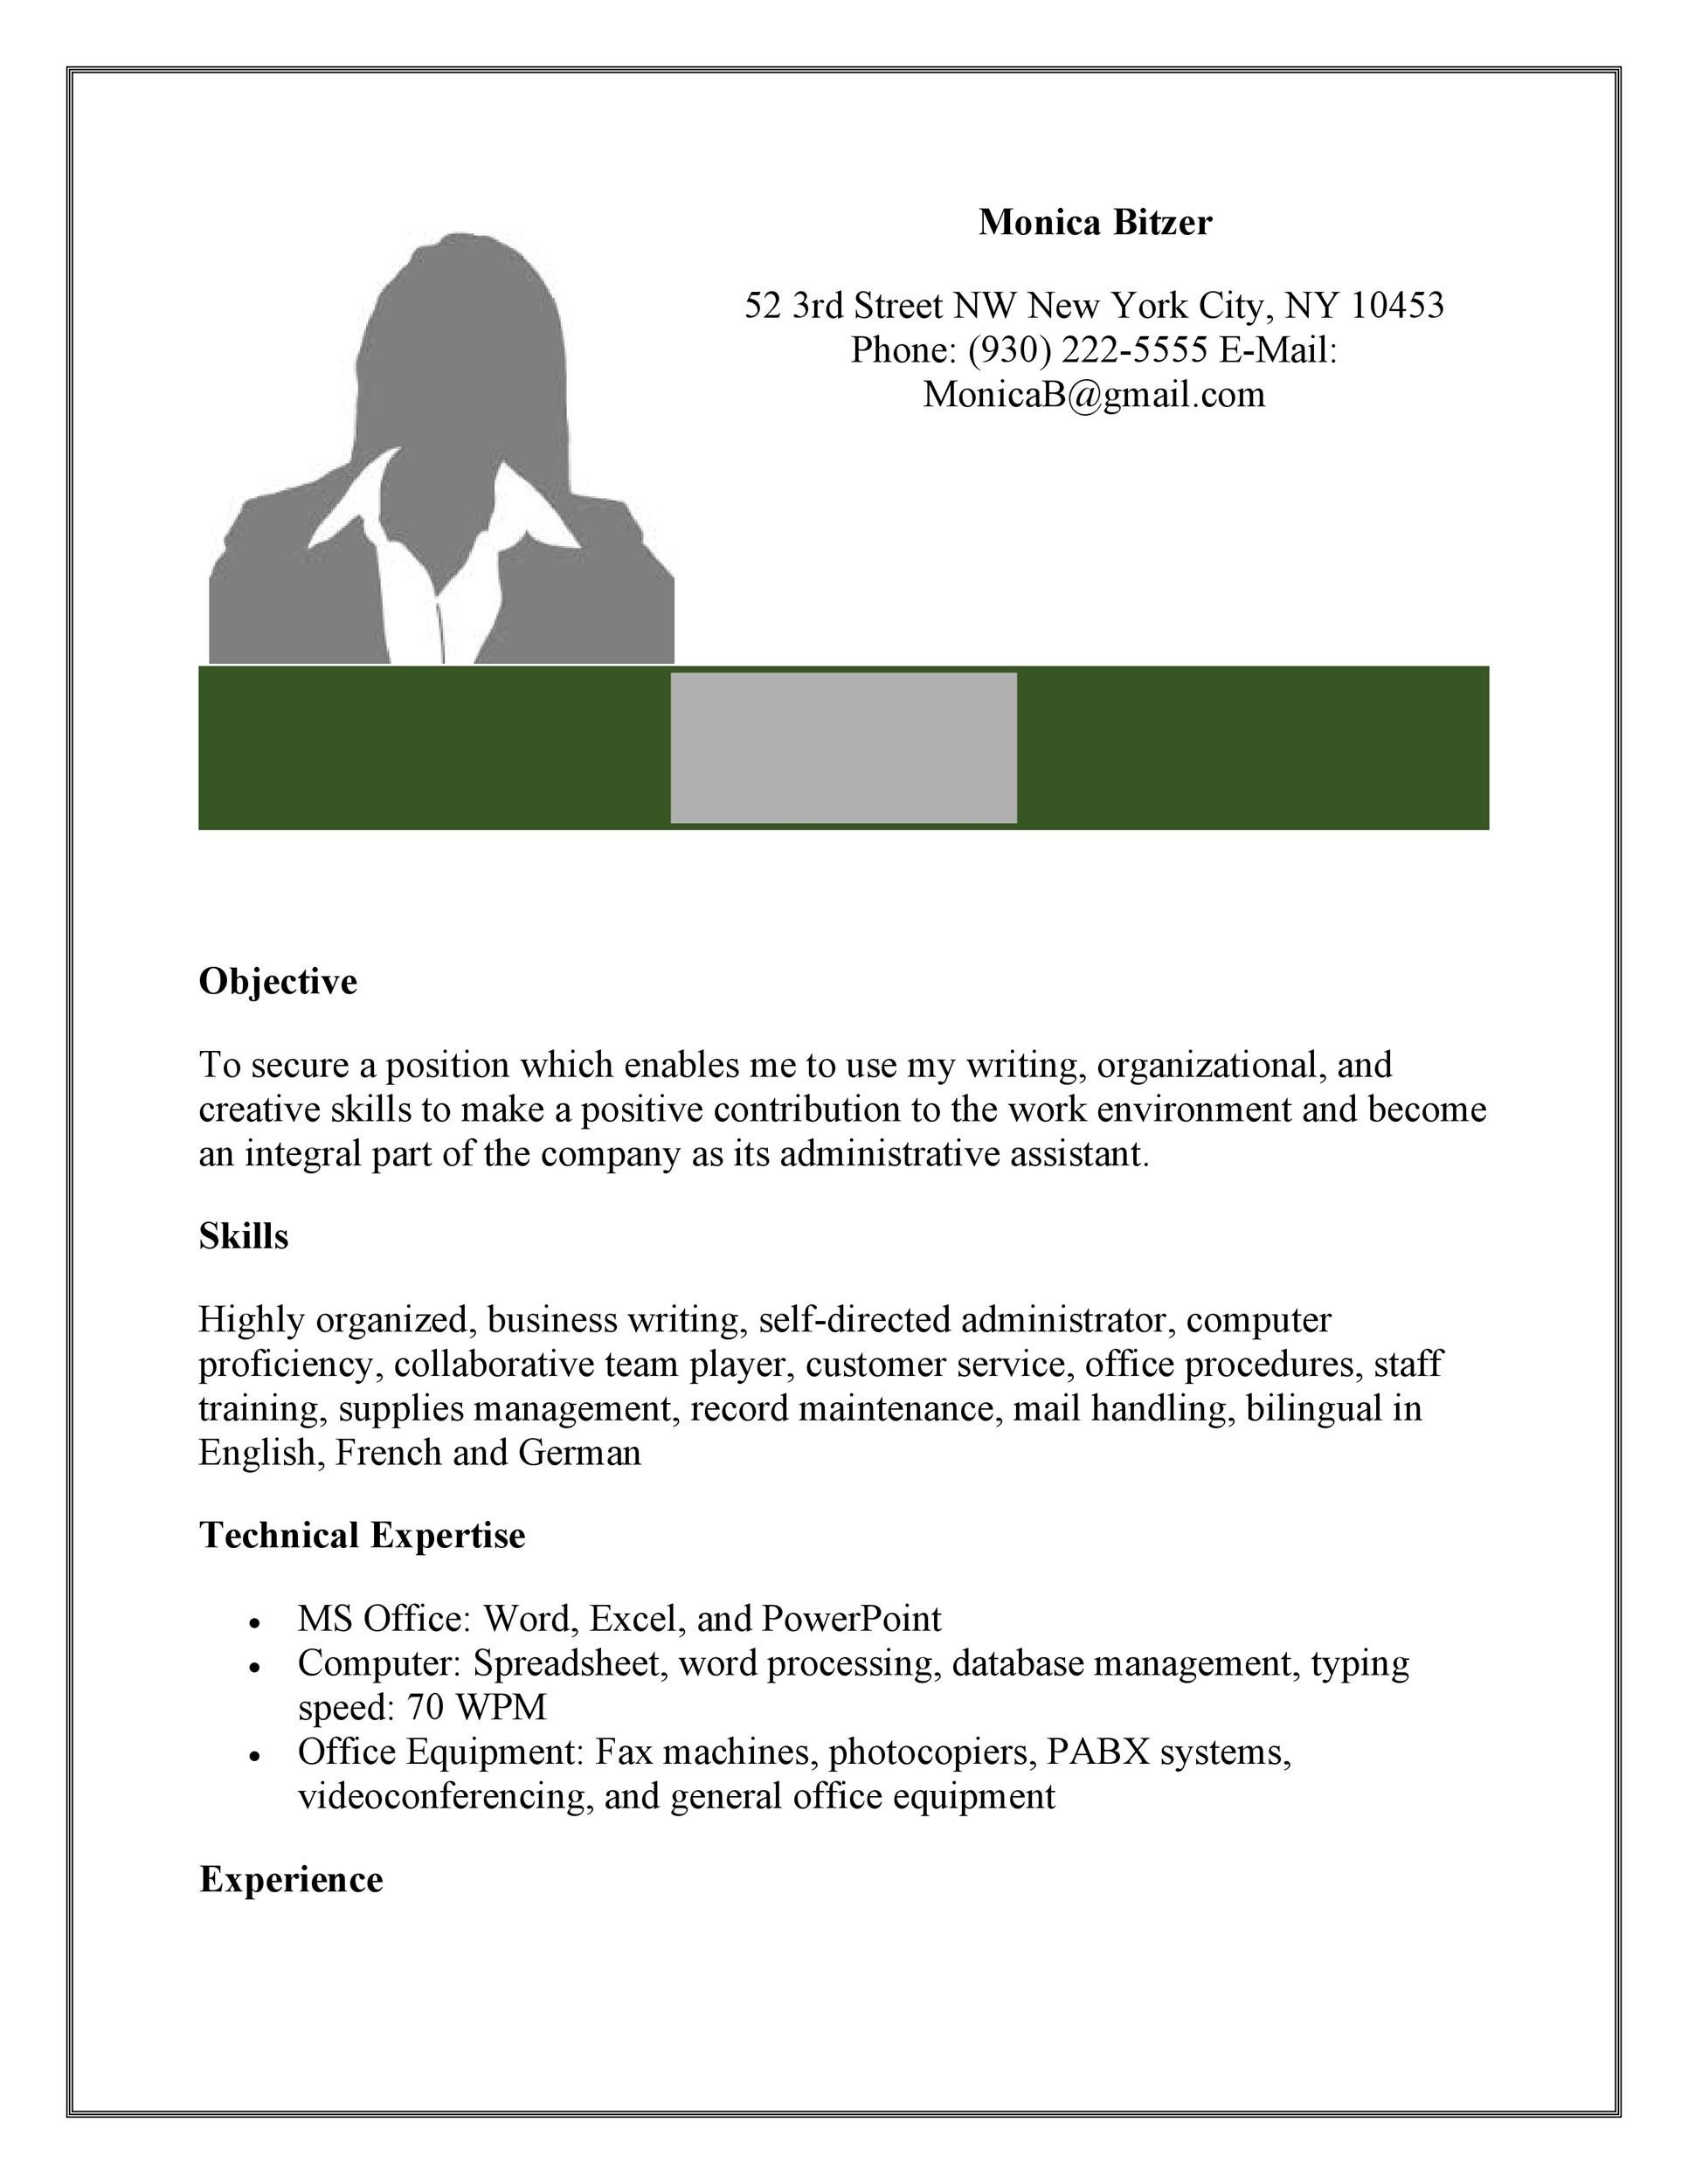 20 free administrative assistant resume samples template lab free administrative assistant resume template 03 flashek Image collections